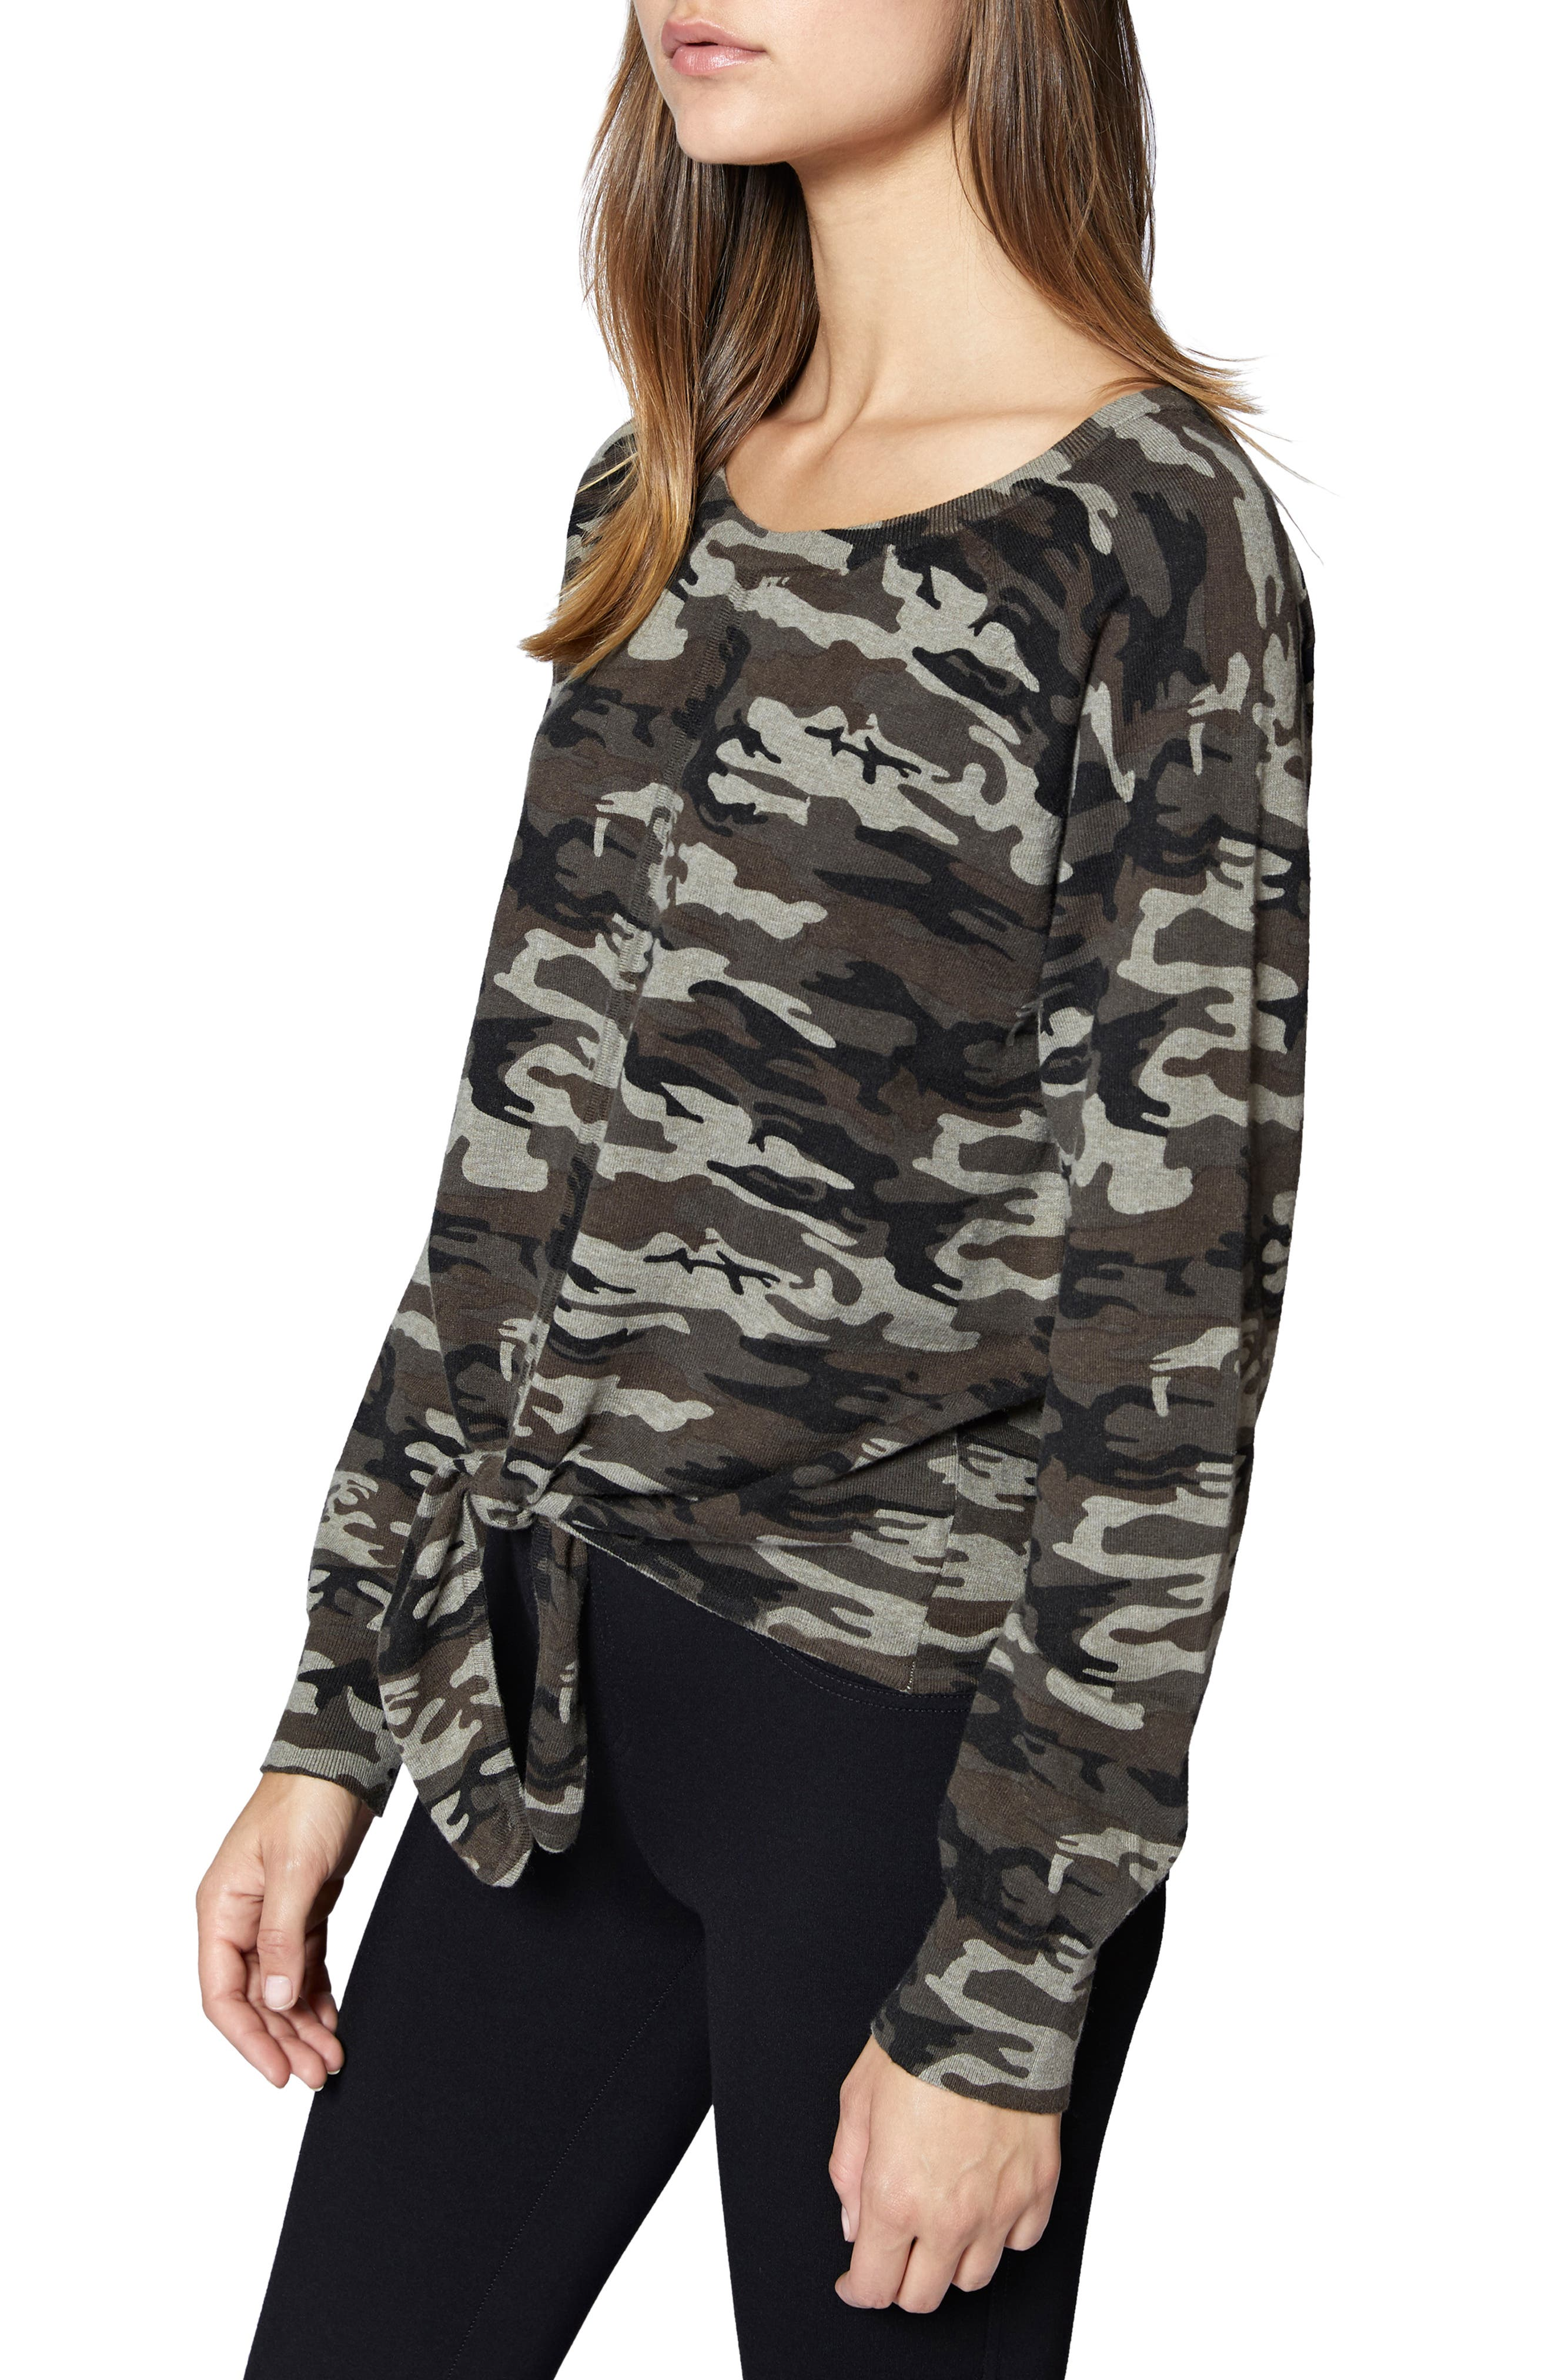 Laguna Camouflage Tie Front Top,                             Alternate thumbnail 3, color,                             HUMAN NATURE CAMO